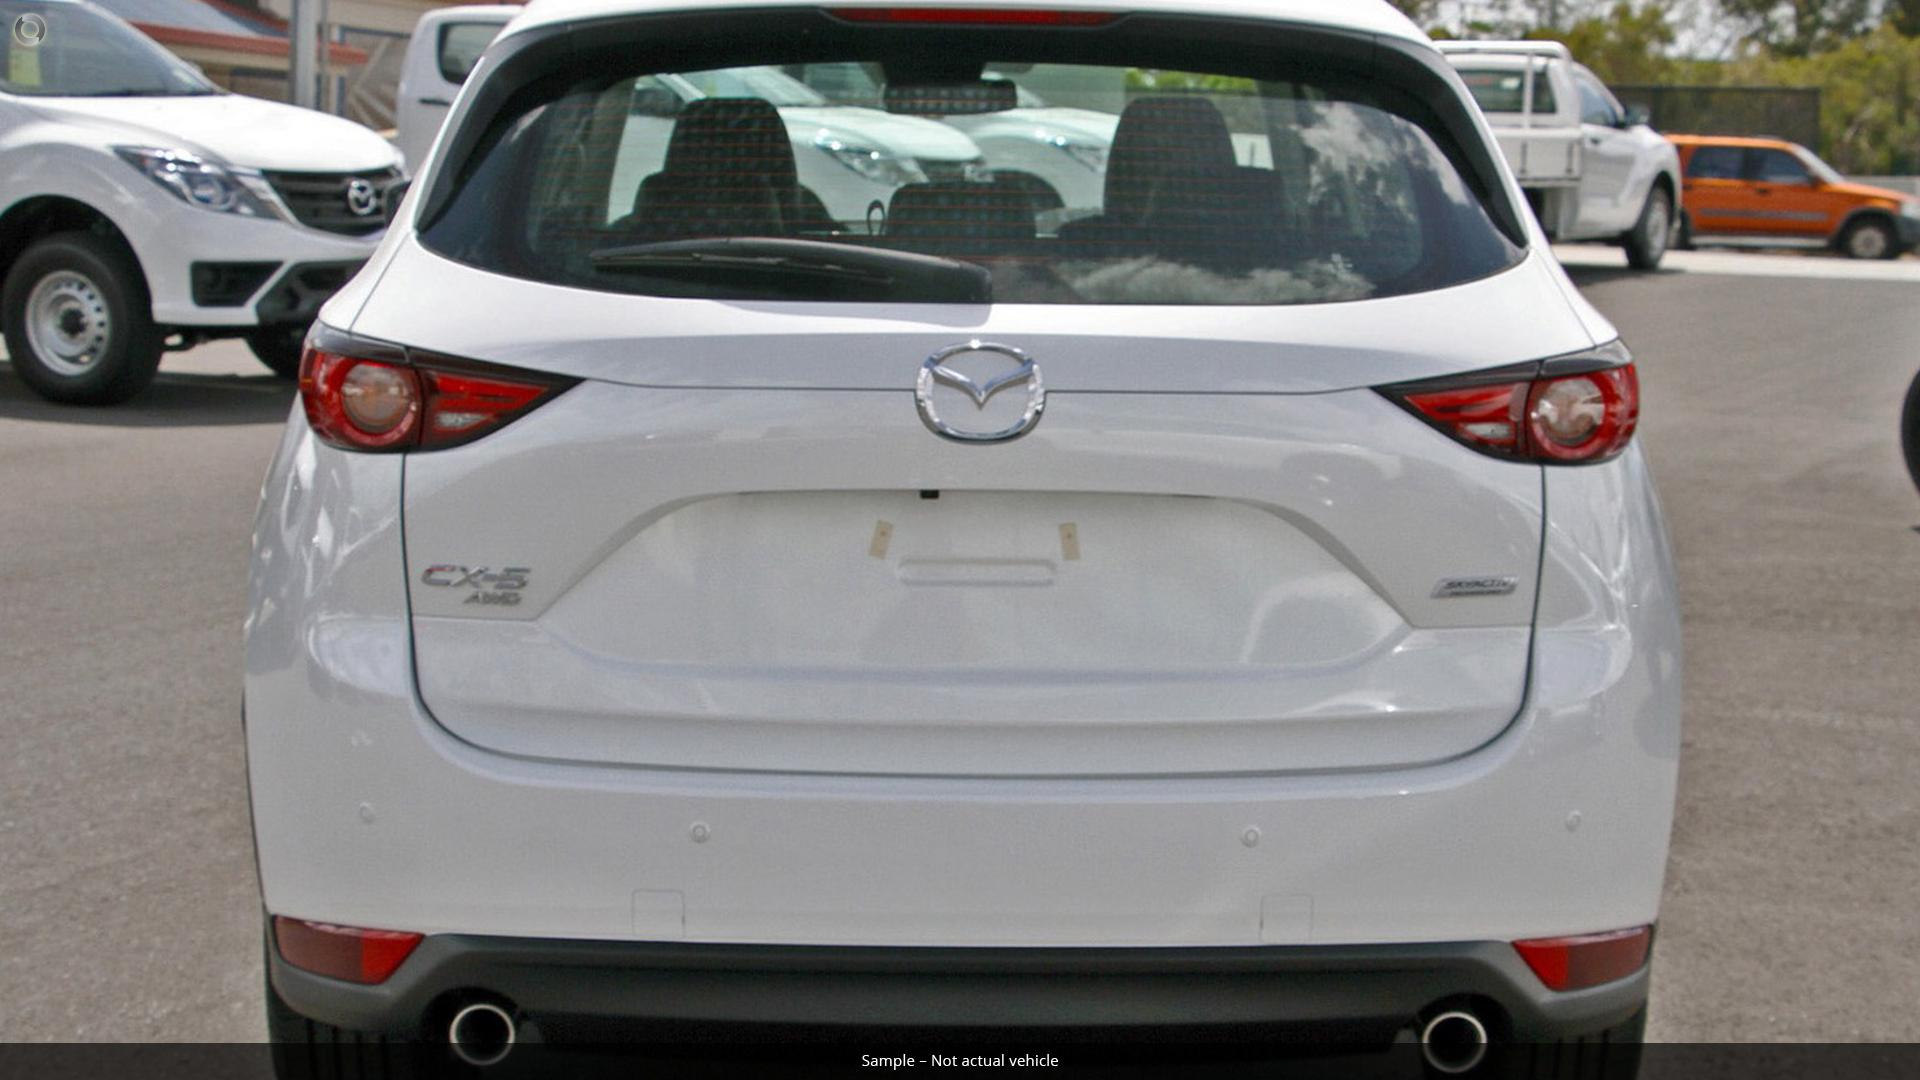 2019 Mazda Cx-5 Touring KF Series